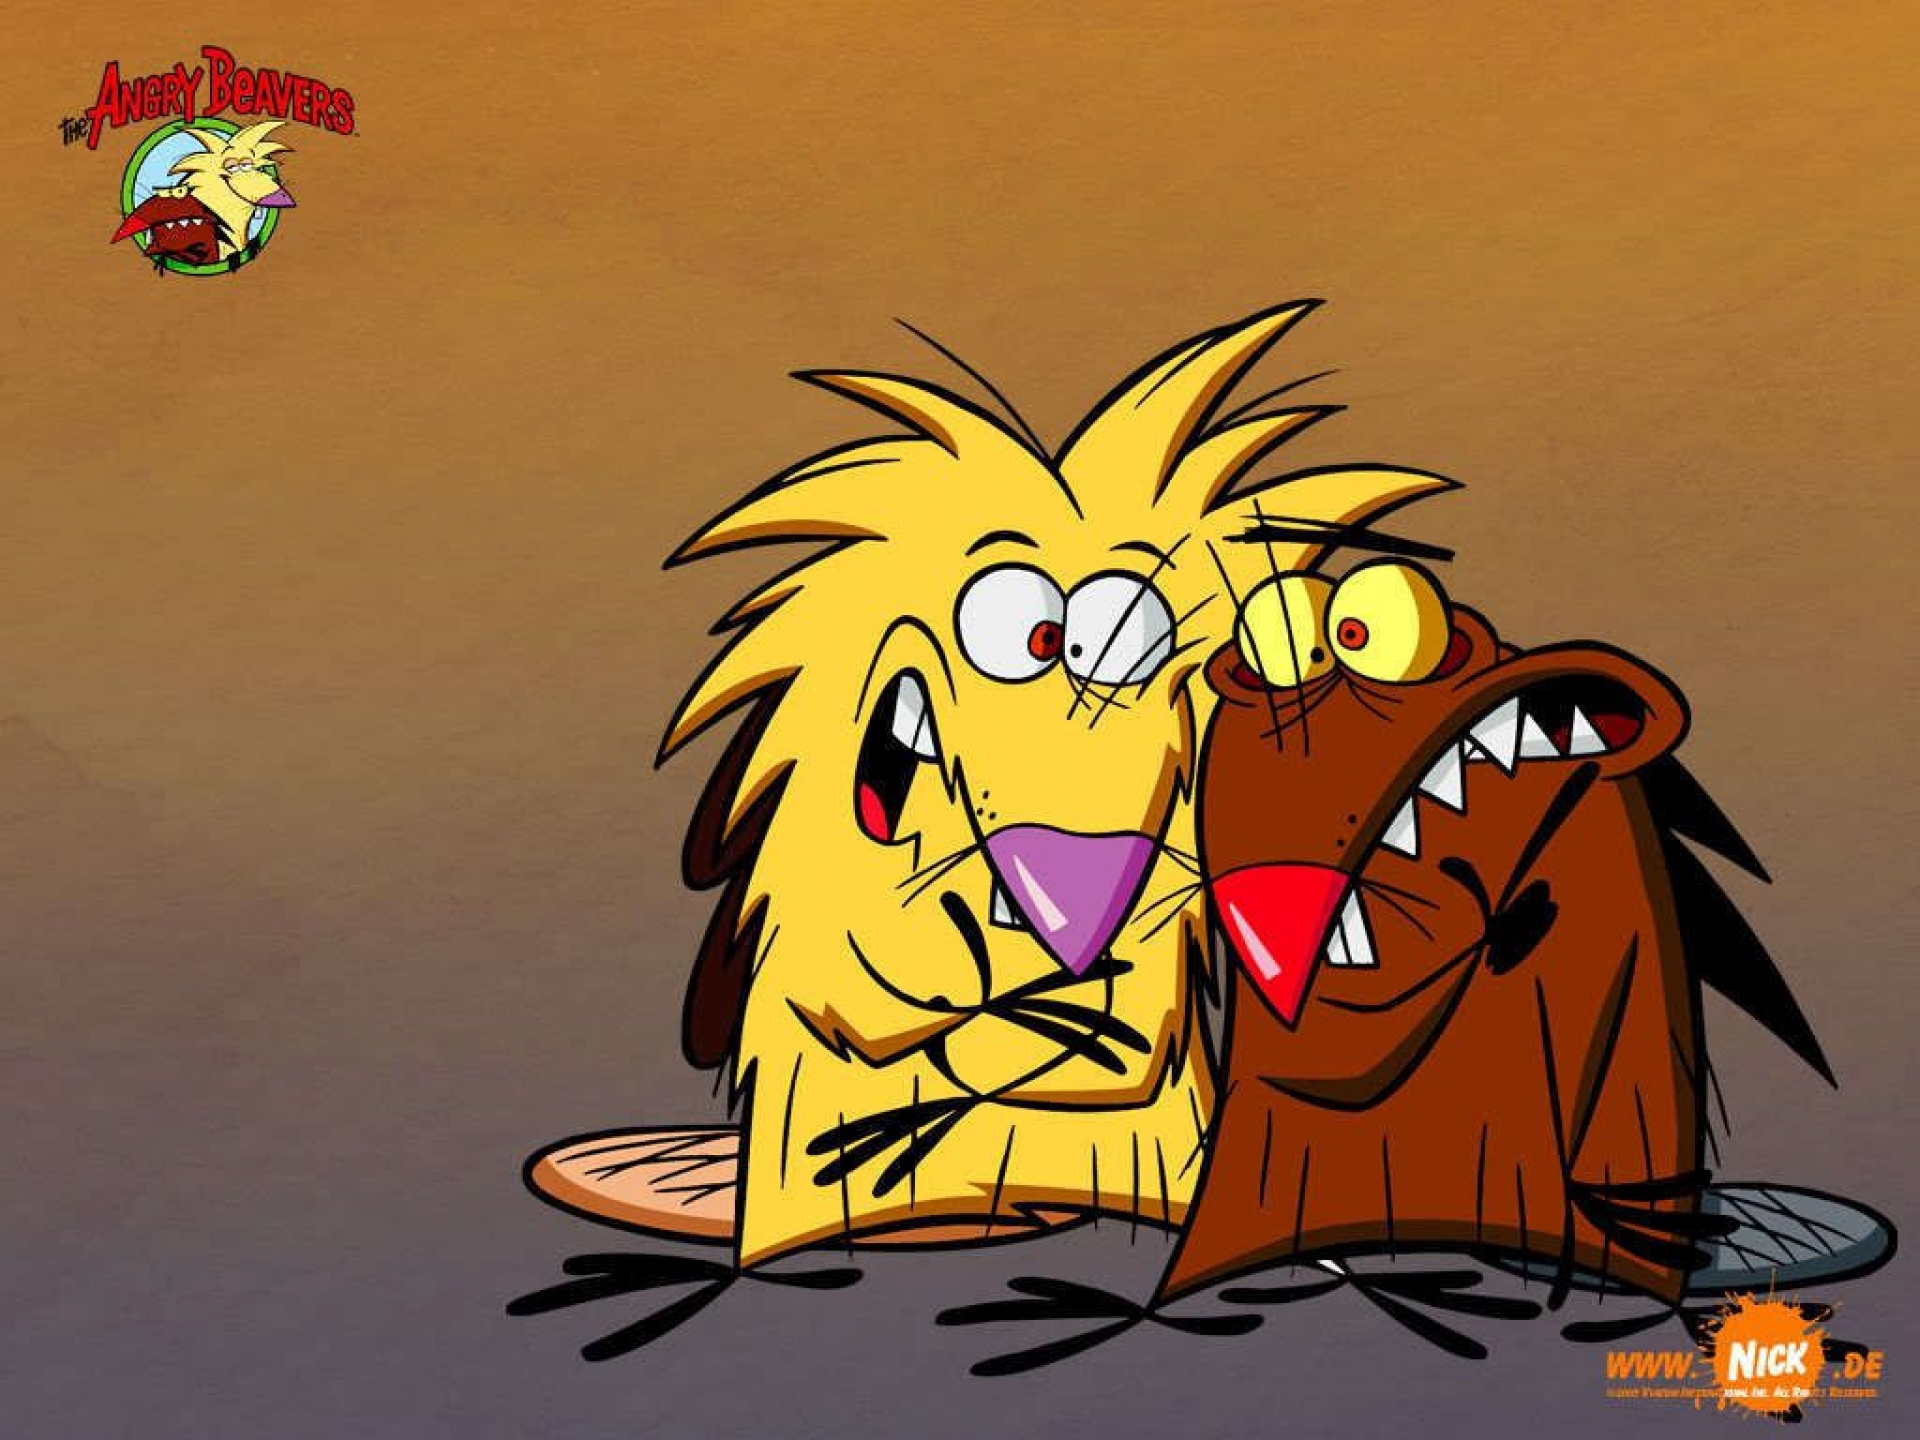 Angry beavers wallpapers and images   wallpapers pictures 1920x1440